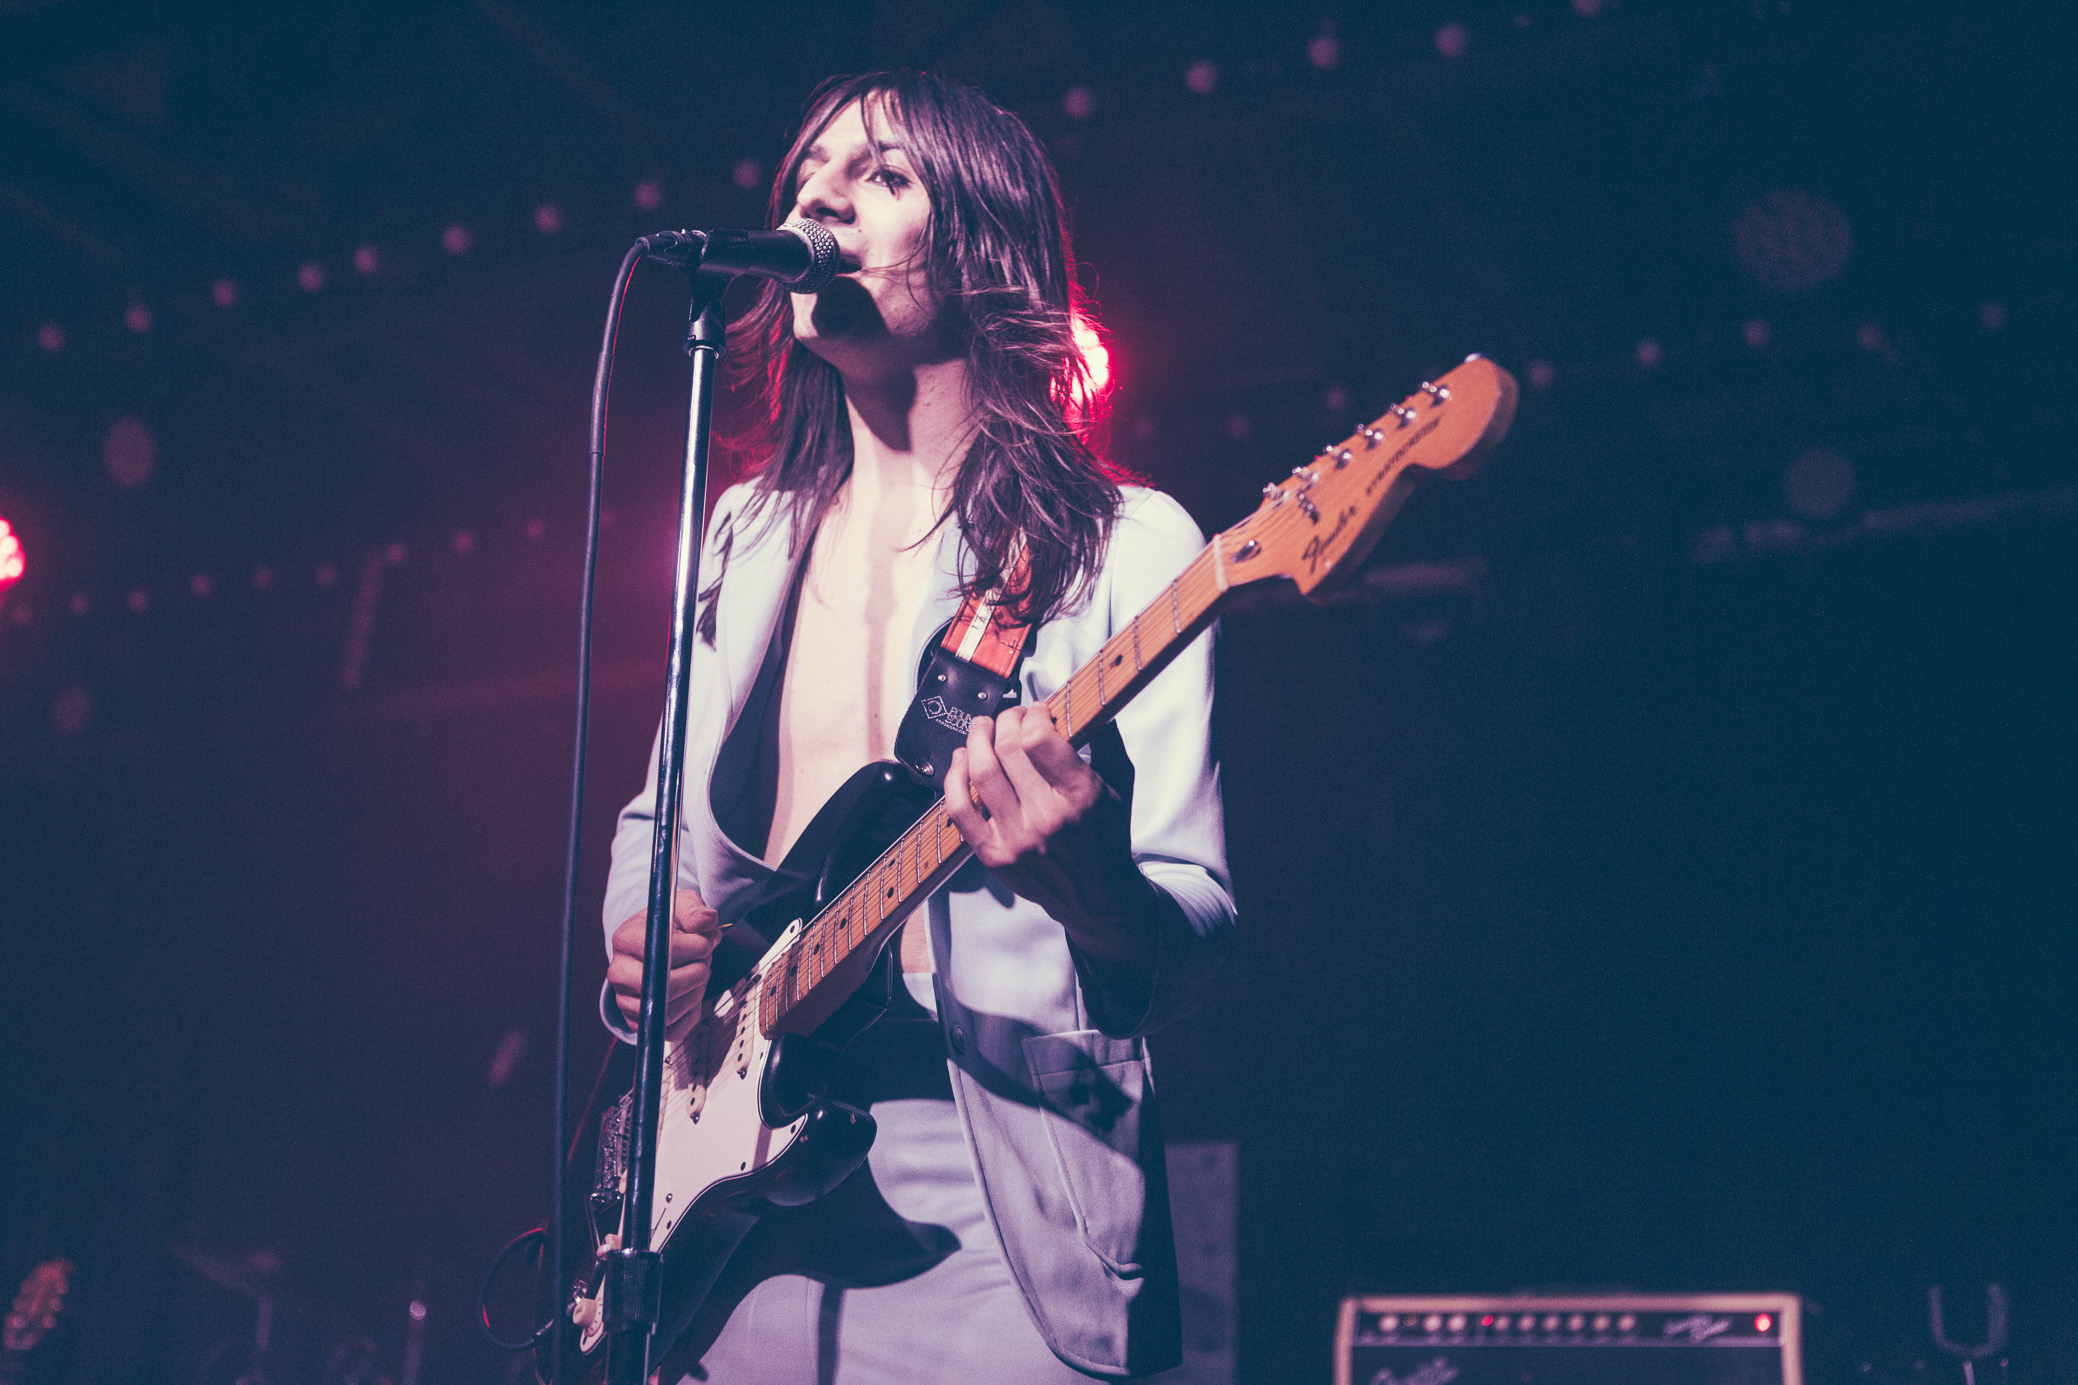 The Lemon Twigs perform in concert at Saturn Birmingham in Birmingham, Alabama on October 28th, 2018. (Photo by David A. Smith / DSmithScenes)